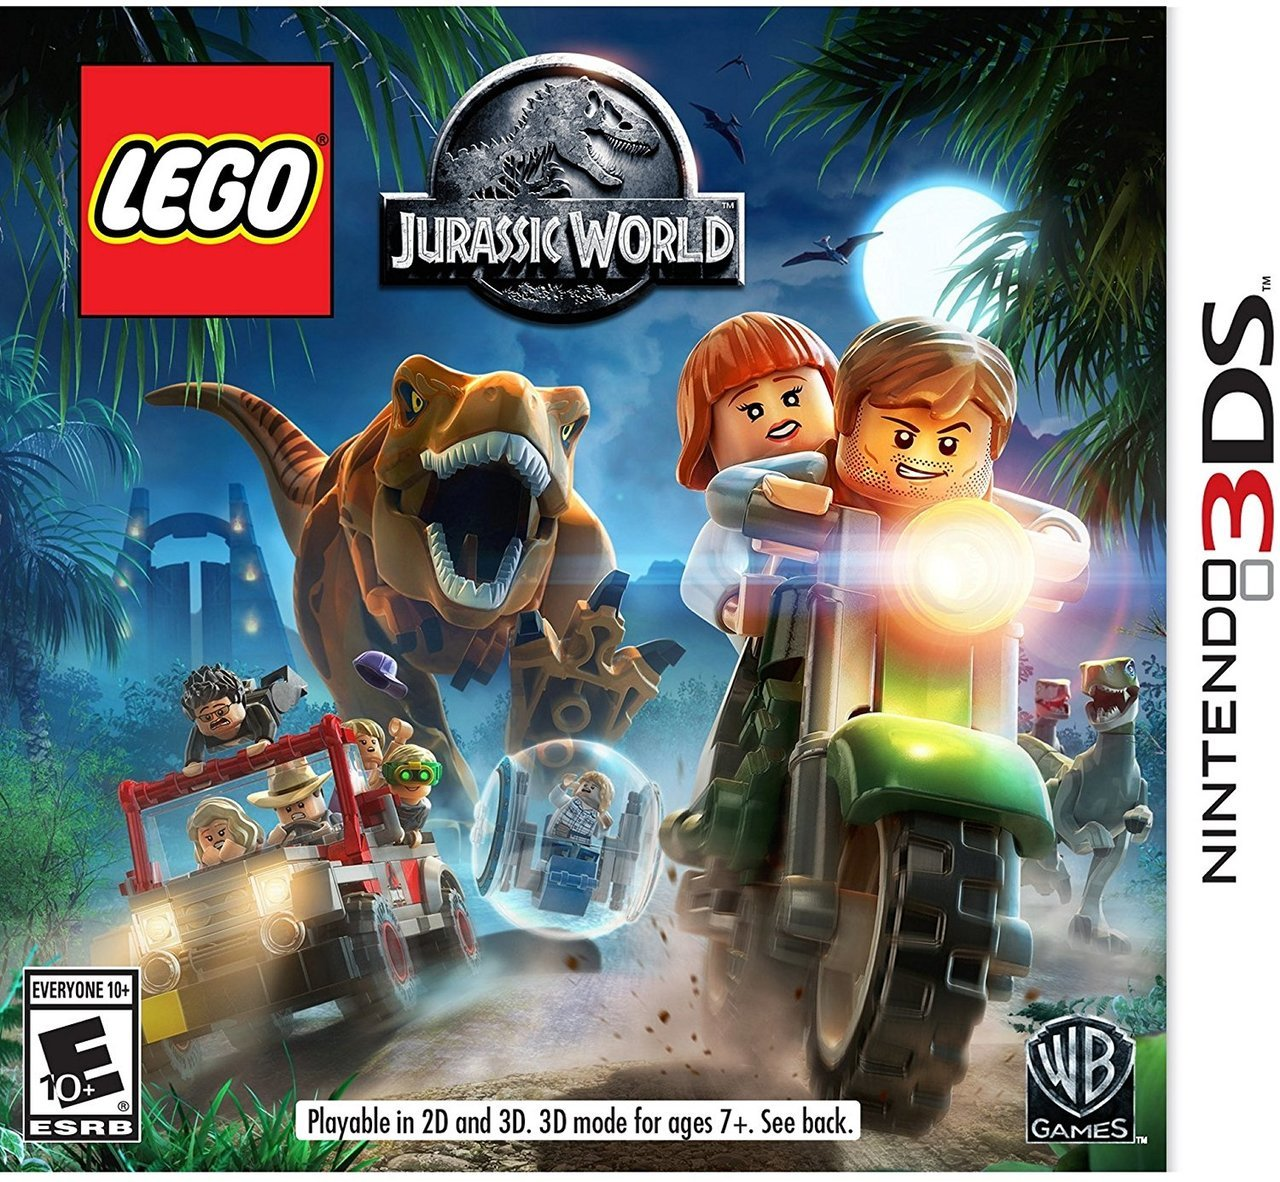 LEGO Jurassic World  Nintendo 3DS -  Warner Bros